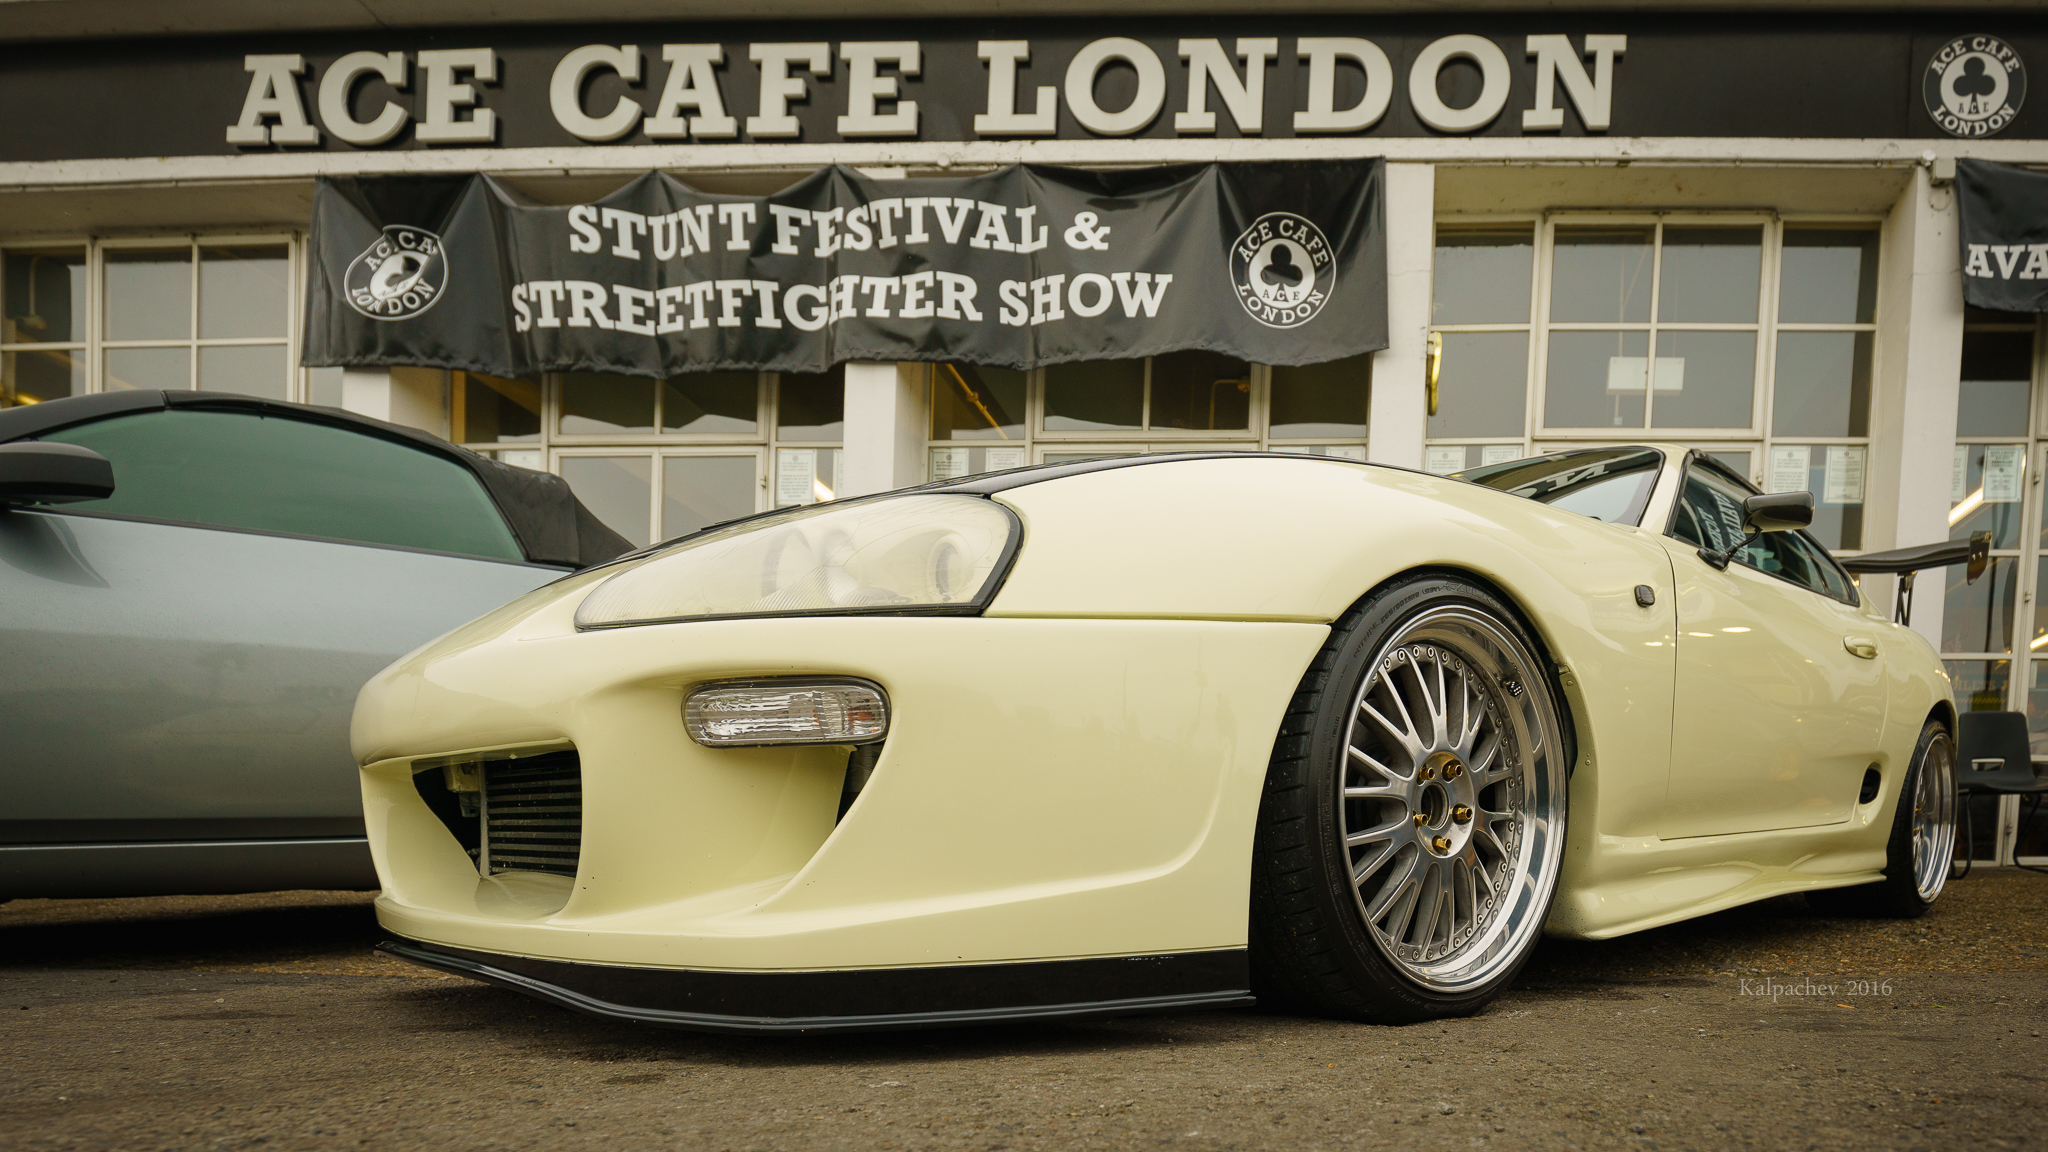 Ace cafe London @acecafelondon #acecafe #fastcars